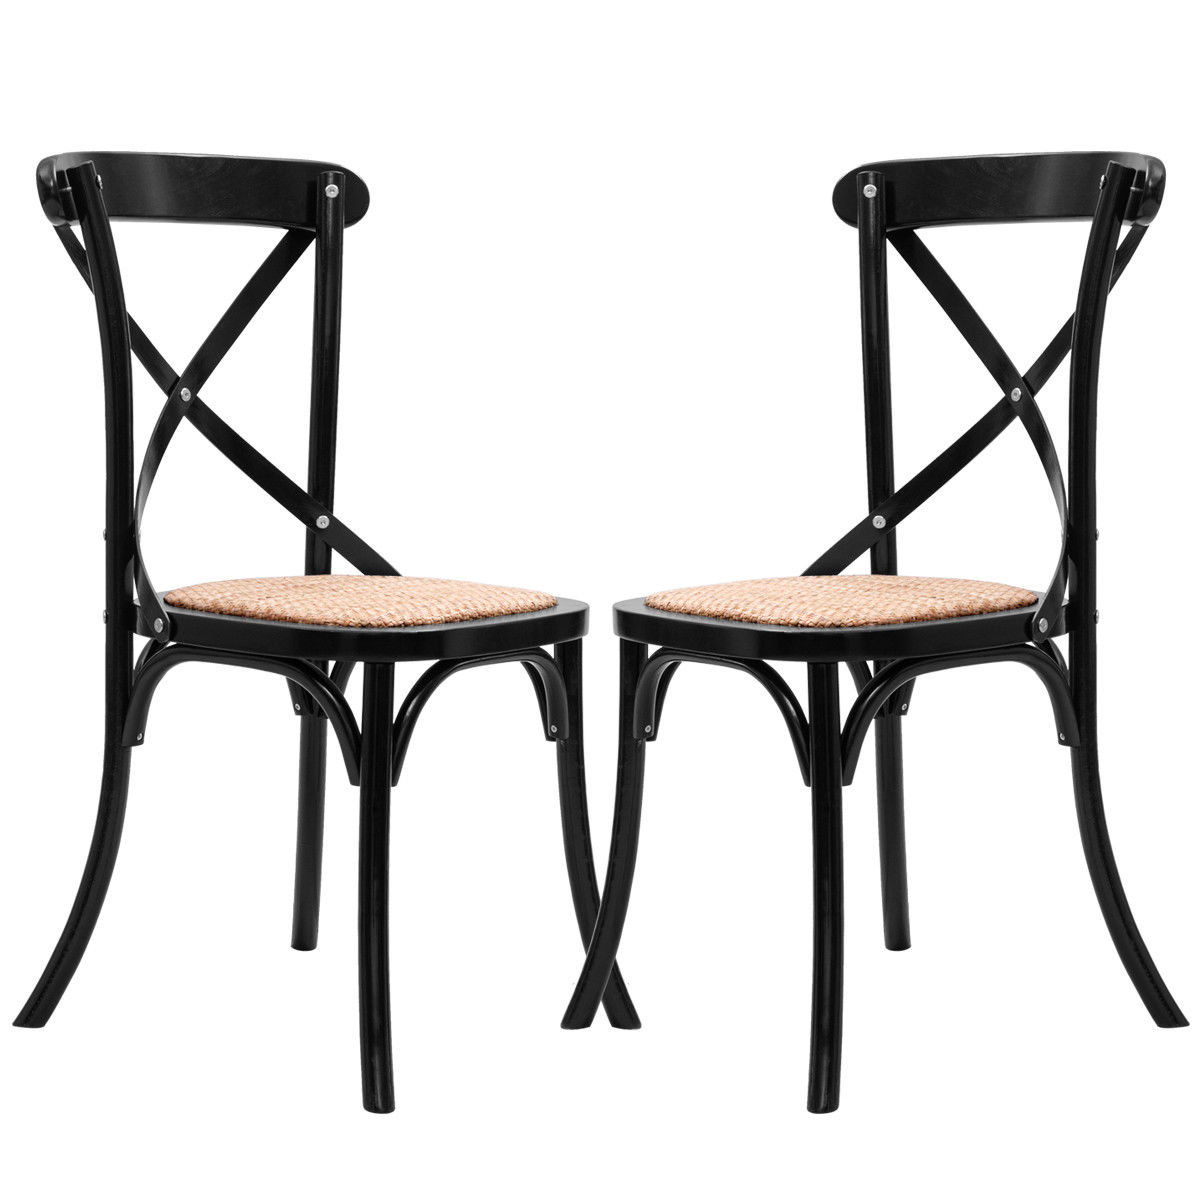 Giantex Set of 2 Cross Back Dining Side Chair Solid Wood Rattan Seat Modern Living Room Dining Room Furniture HW56269BK free shipping dining stool bathroom chair wrought iron seat soft pu cushion living room furniture